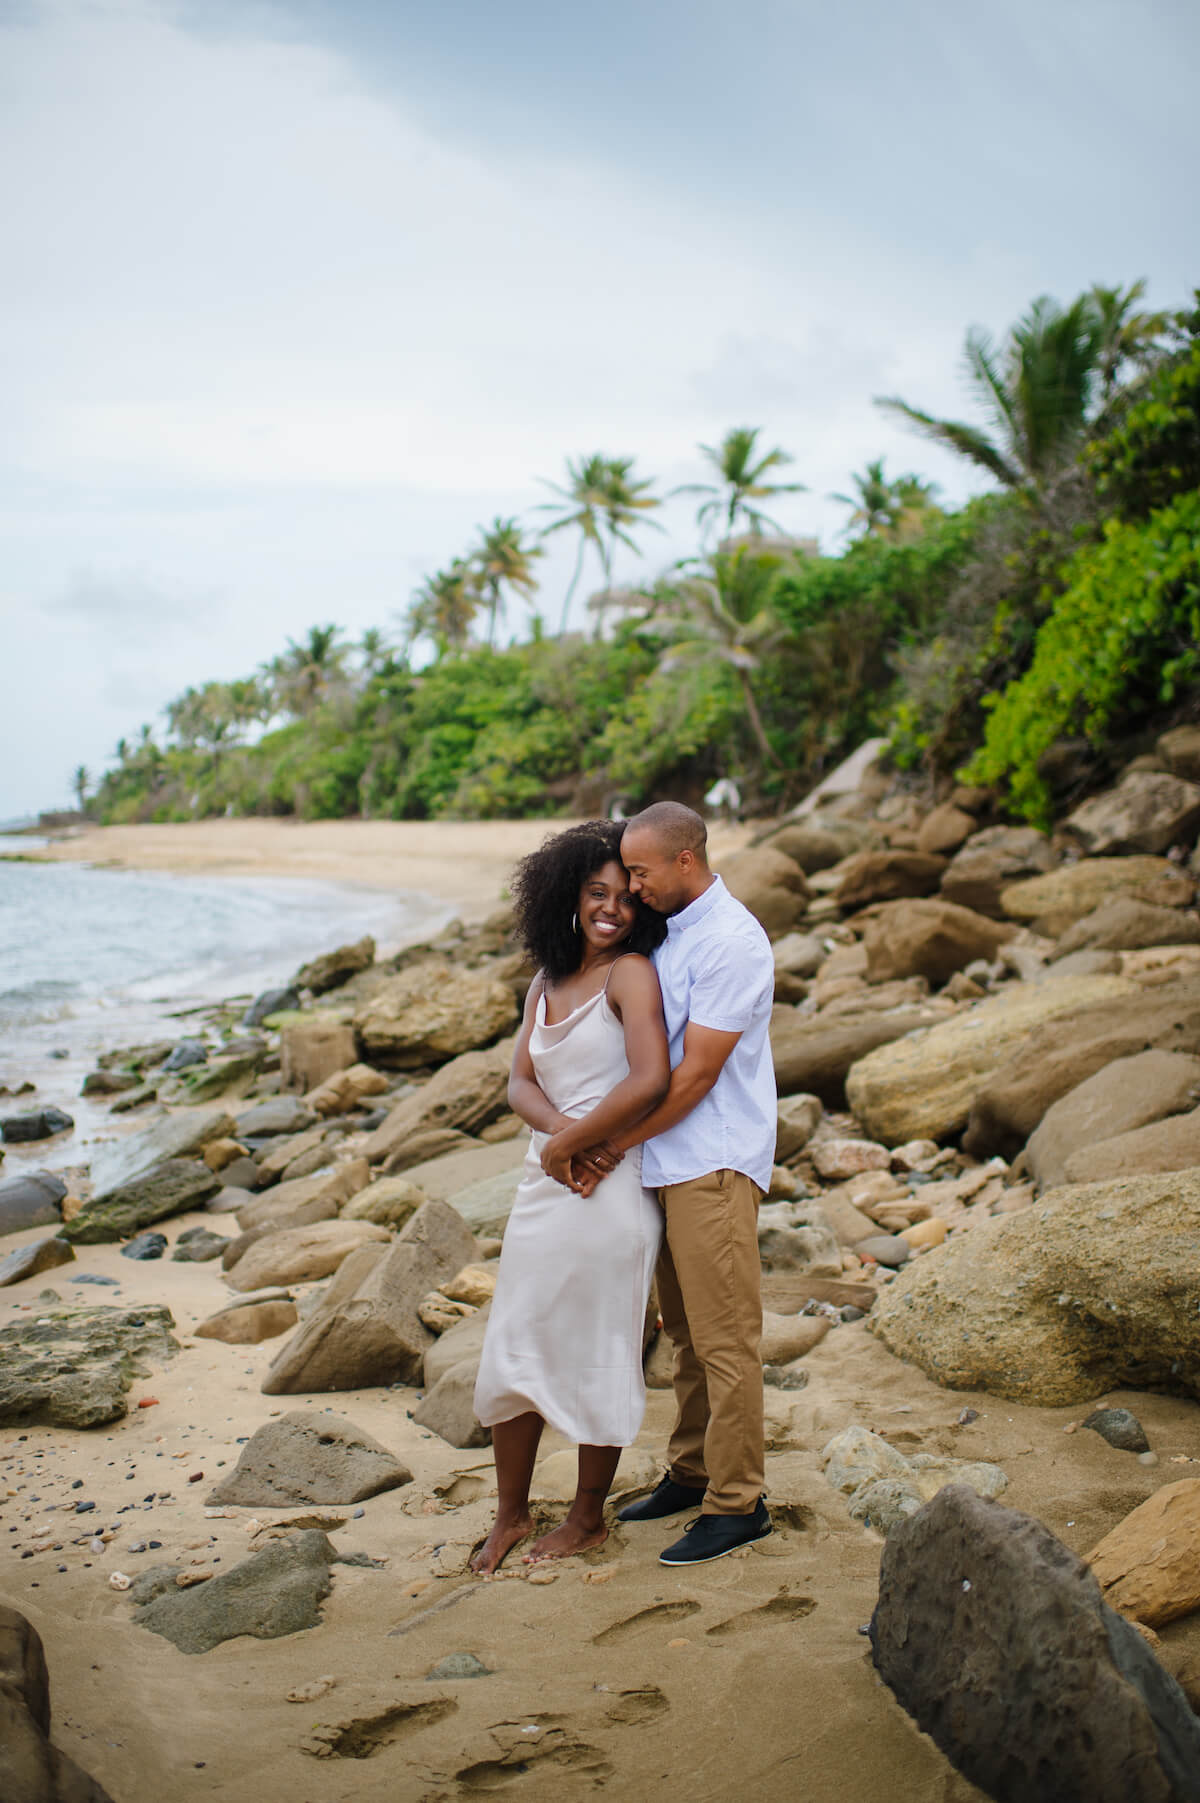 A man and a woman hold each other closely and smile while standing on a beach in San Juan, Puerto Rico.